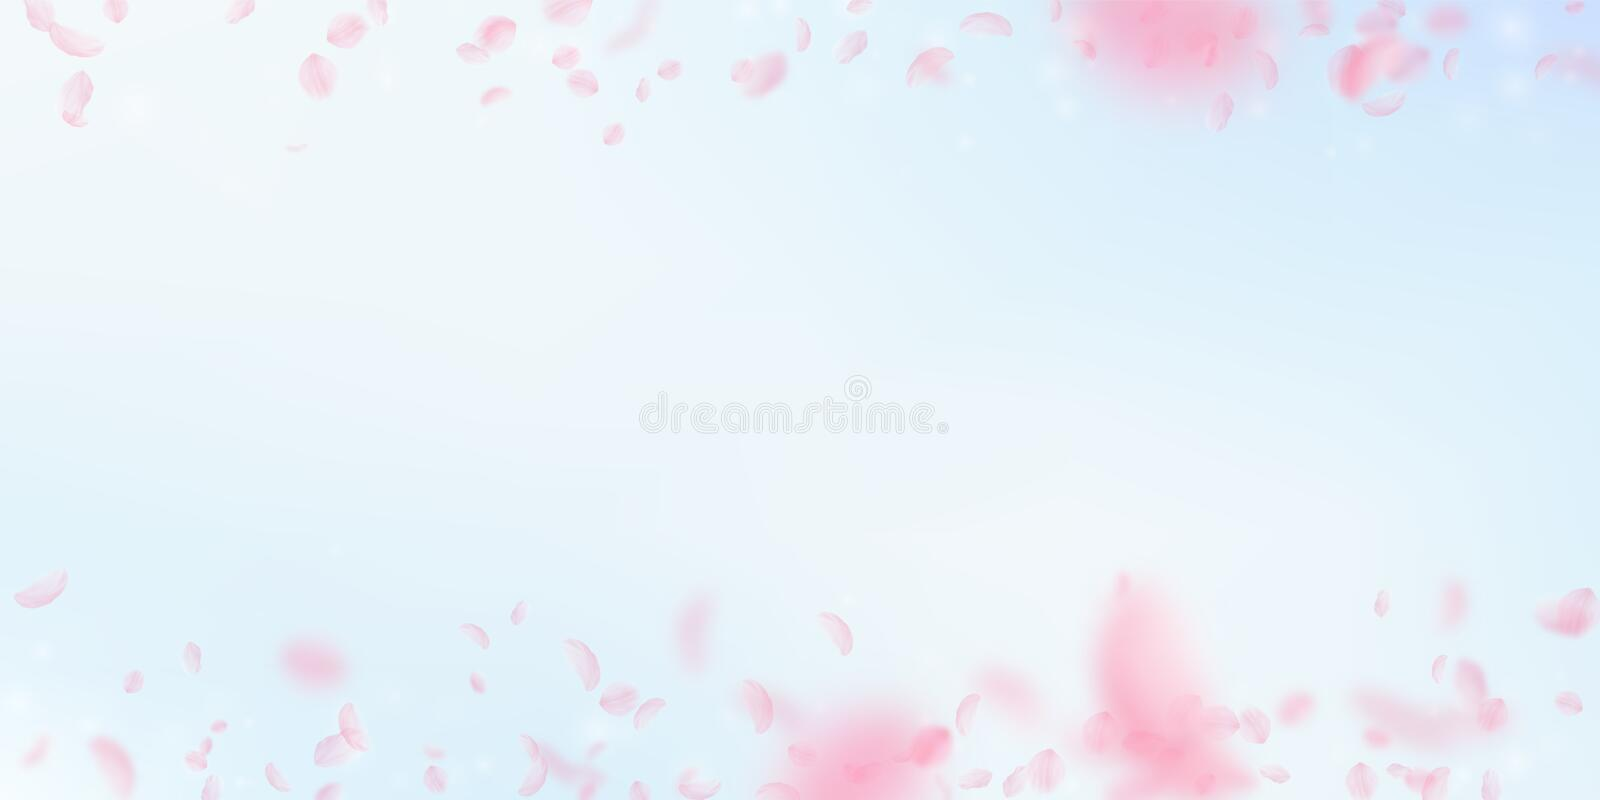 Sakura petals falling down. Romantic pink flowers border. Flying petals on blue sky wide background. stock illustration